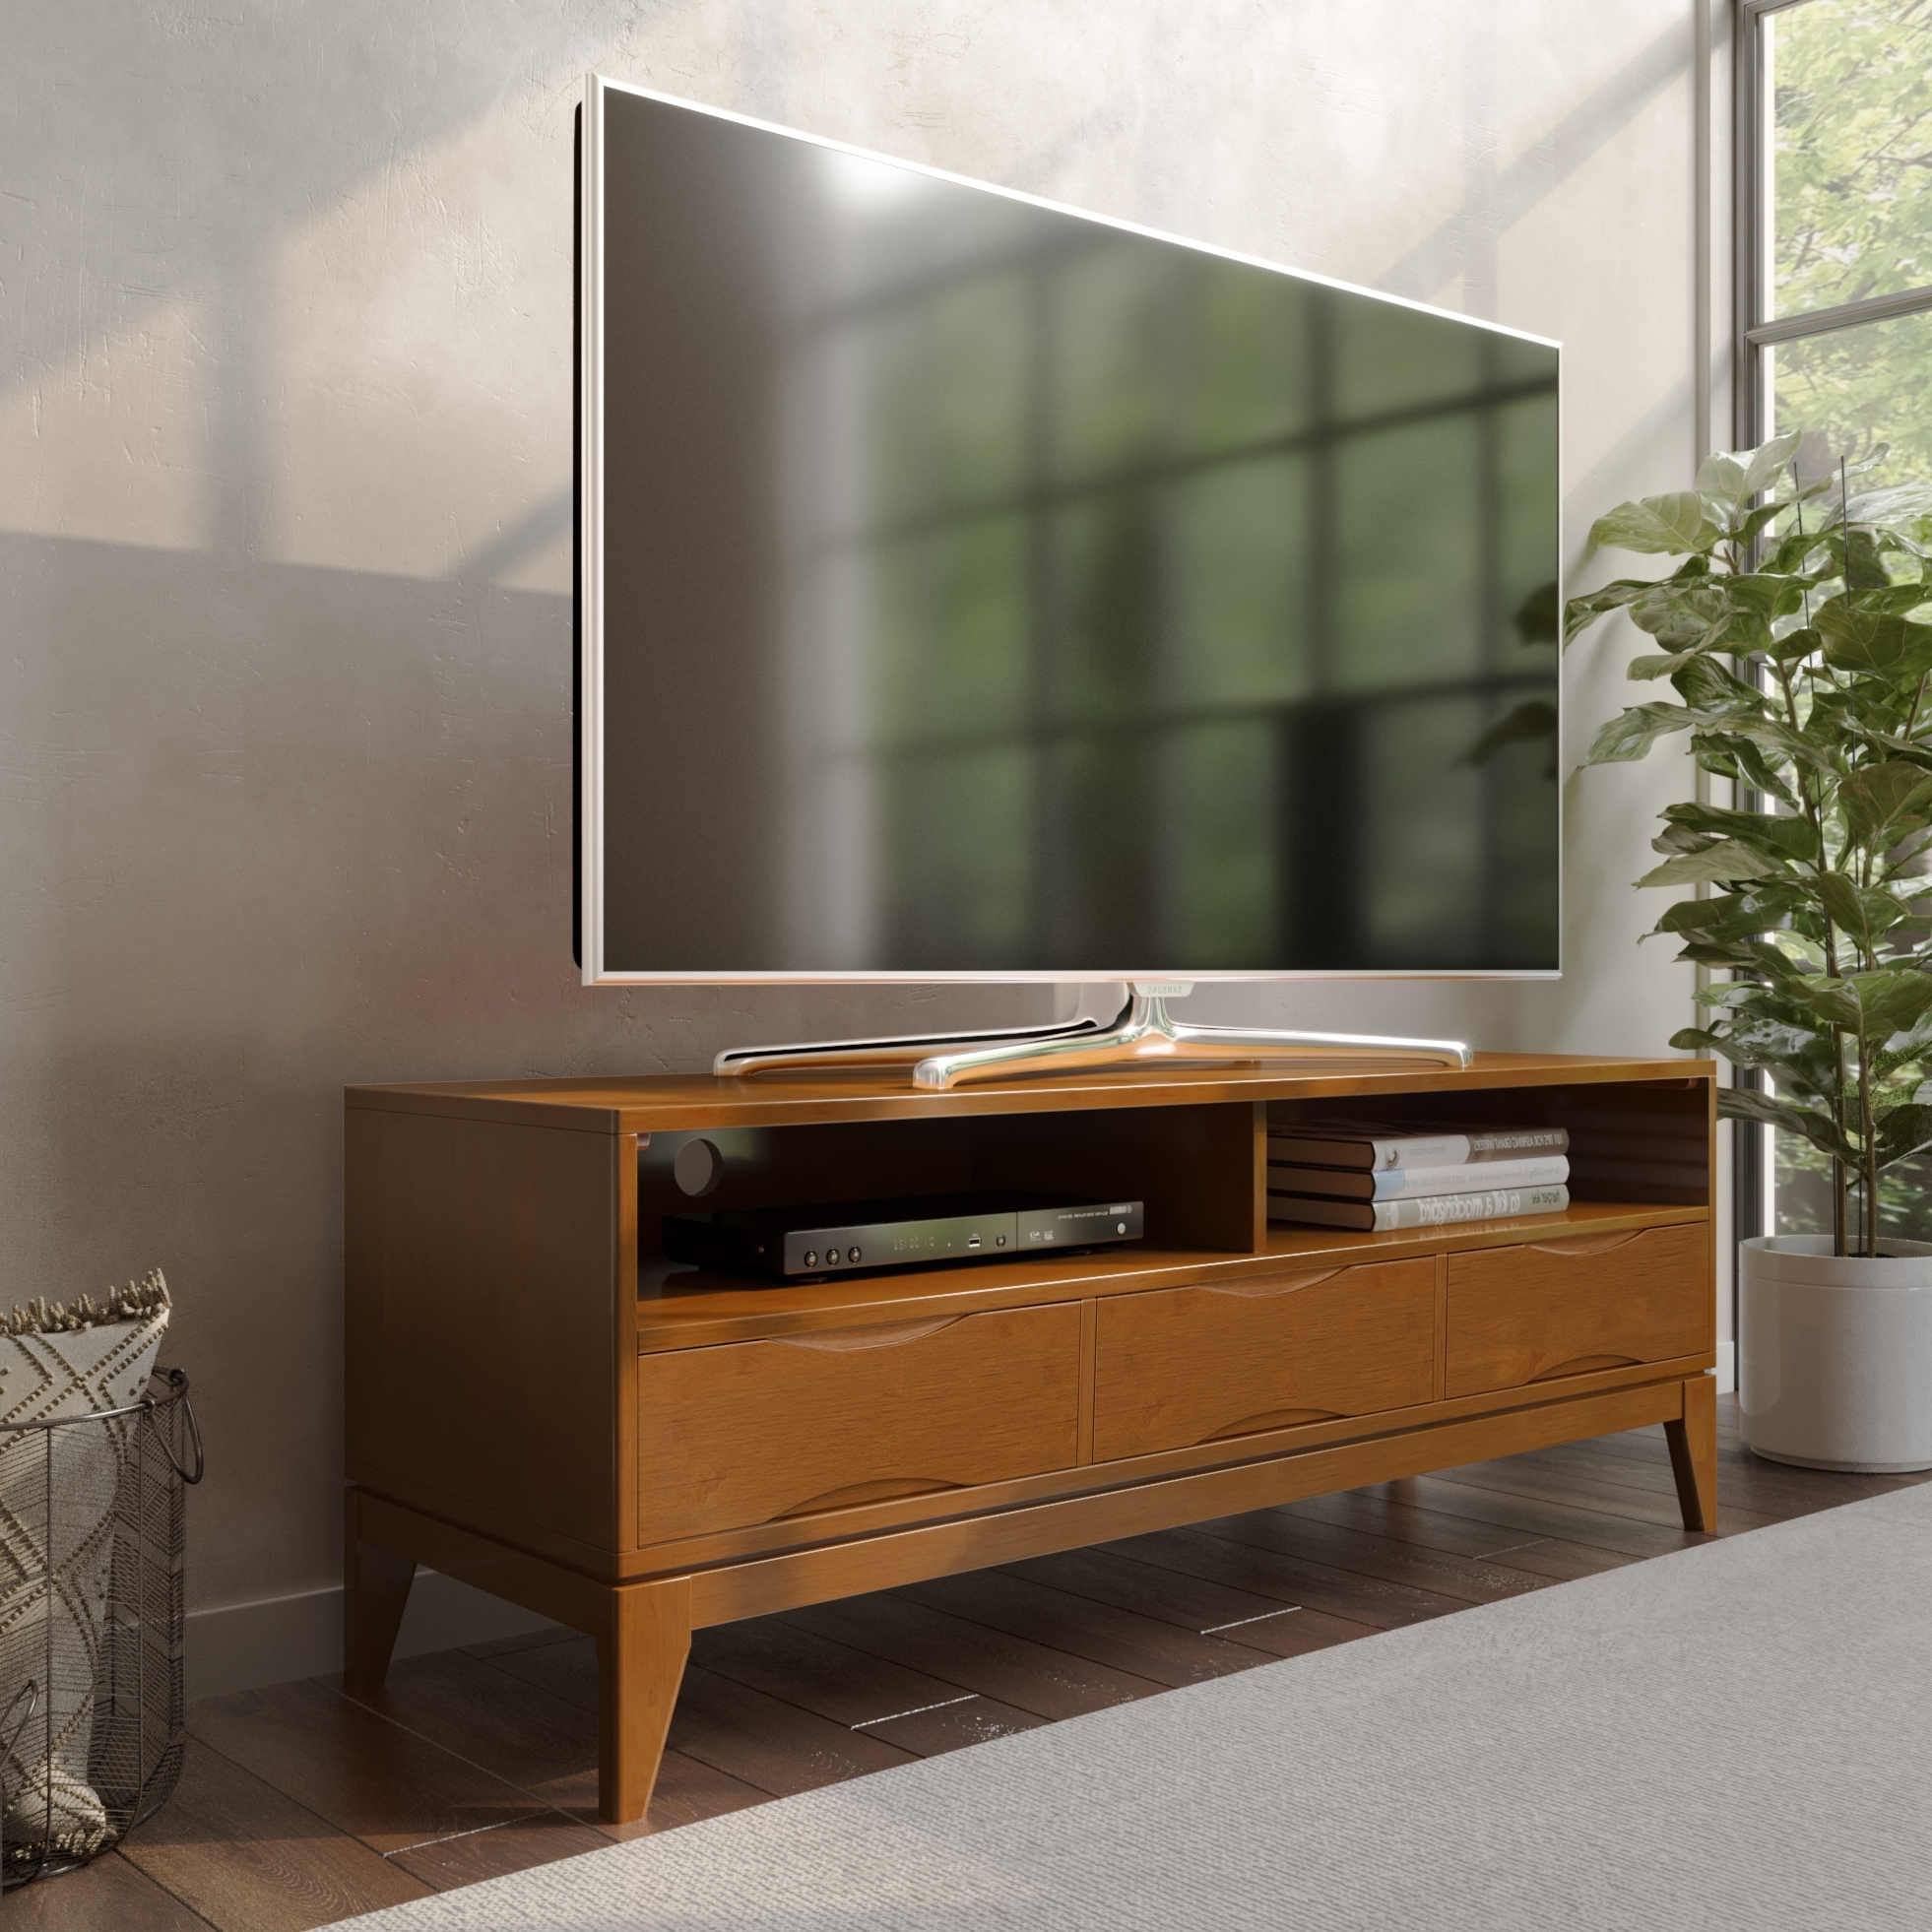 Wyndenhall Pearson Solid Hardwood 60 Inch Wide Mid Century Throughout Well Known Anya Wide Tv Stands (View 4 of 10)